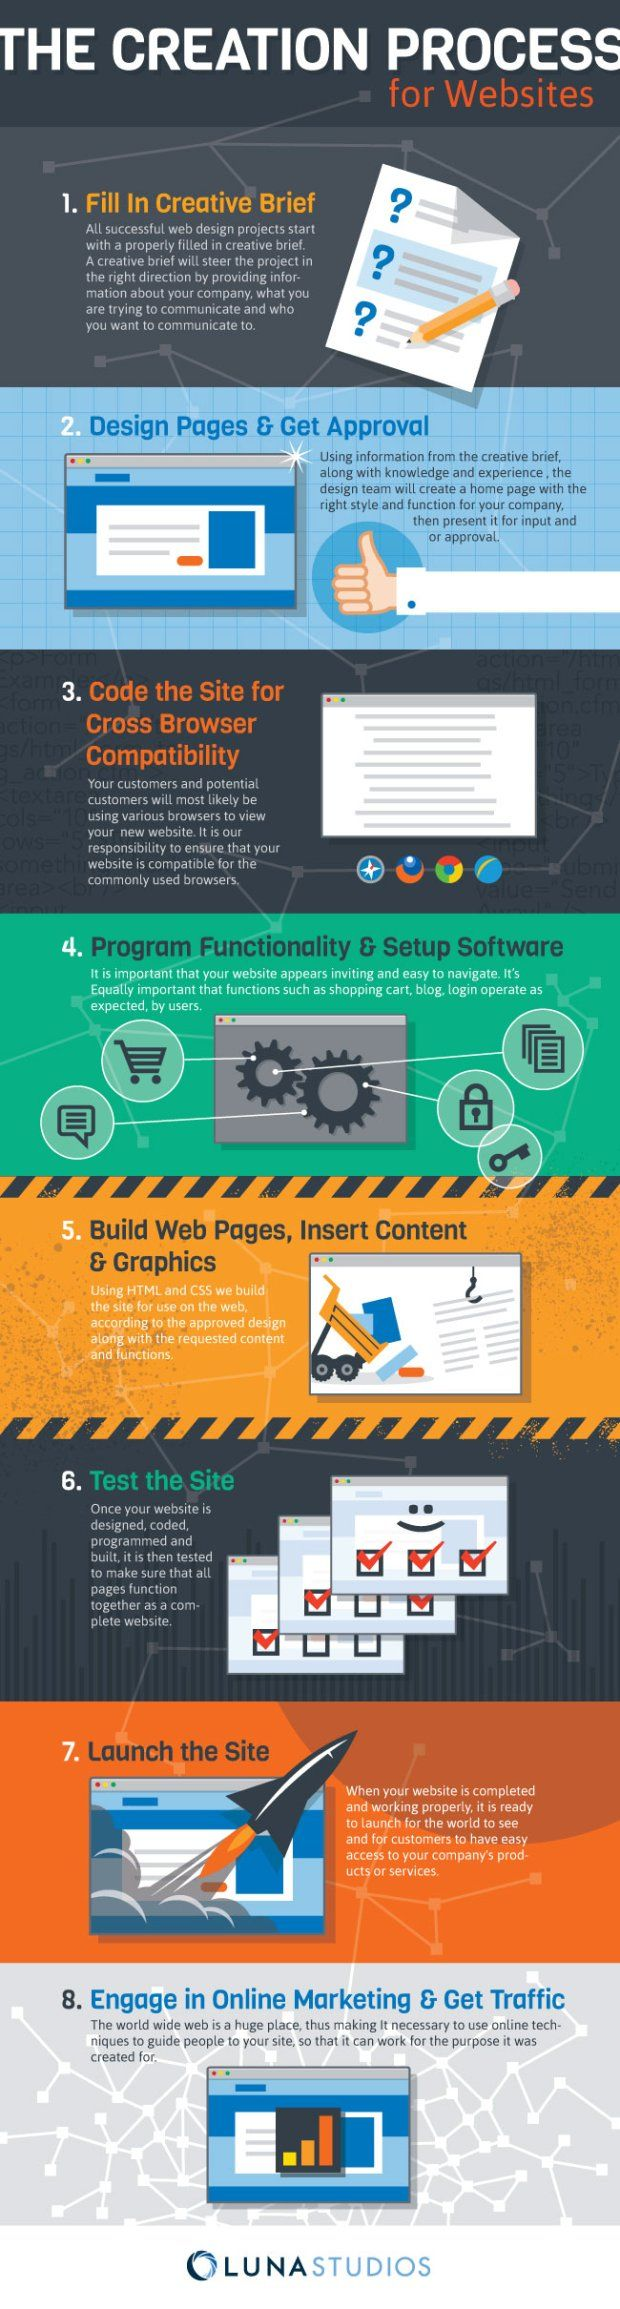 Web Design Process Infographic #business #weddingbusiness #aawep